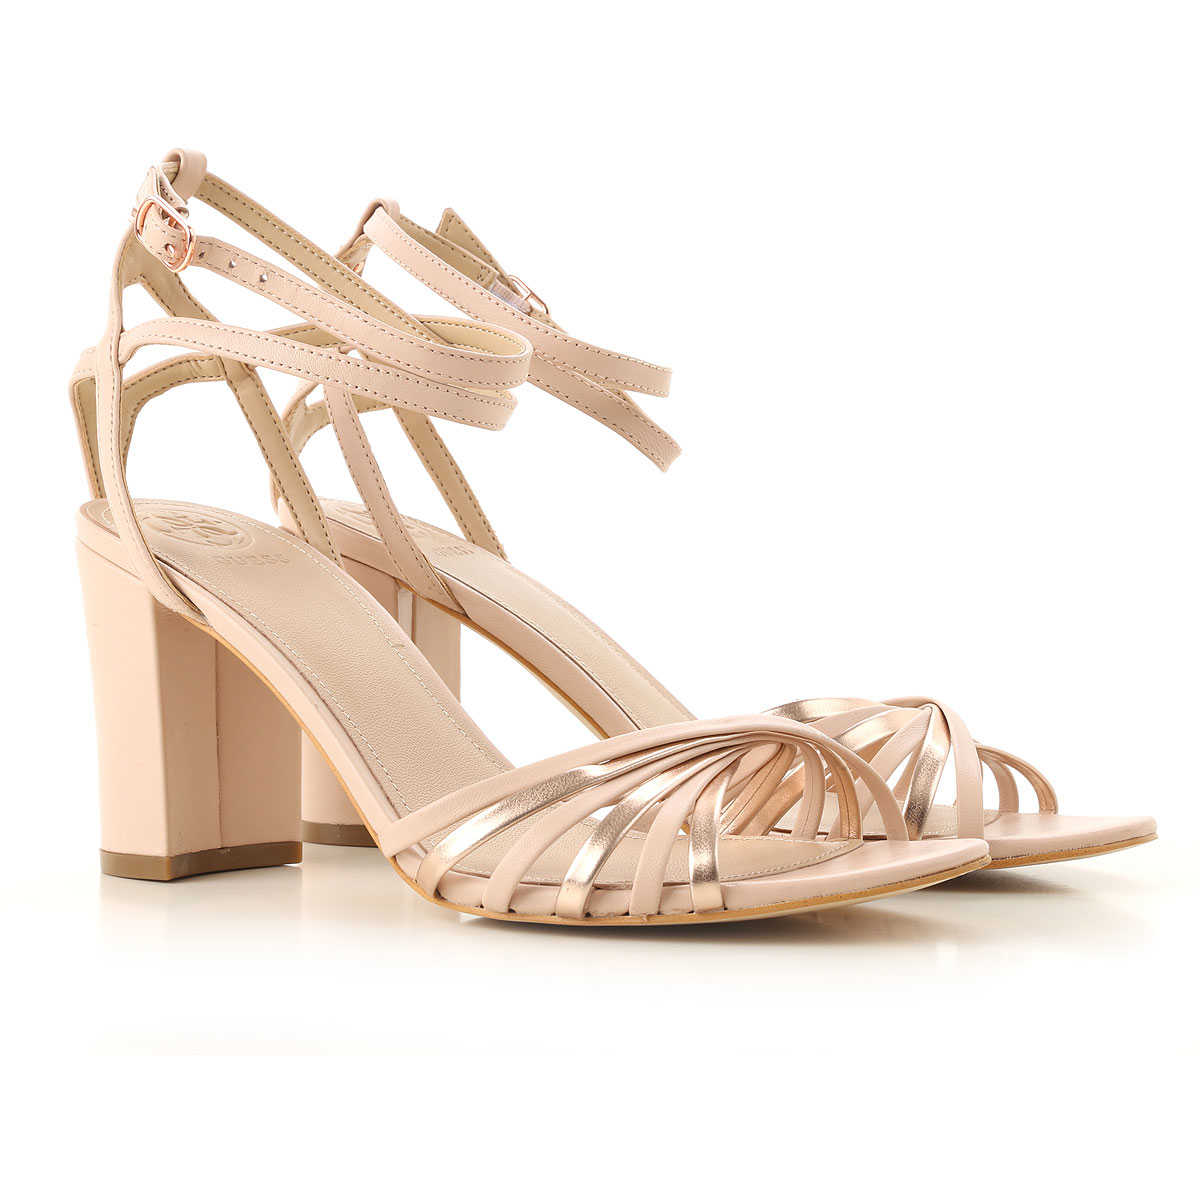 Guess Sandals for Women, blush, Leather